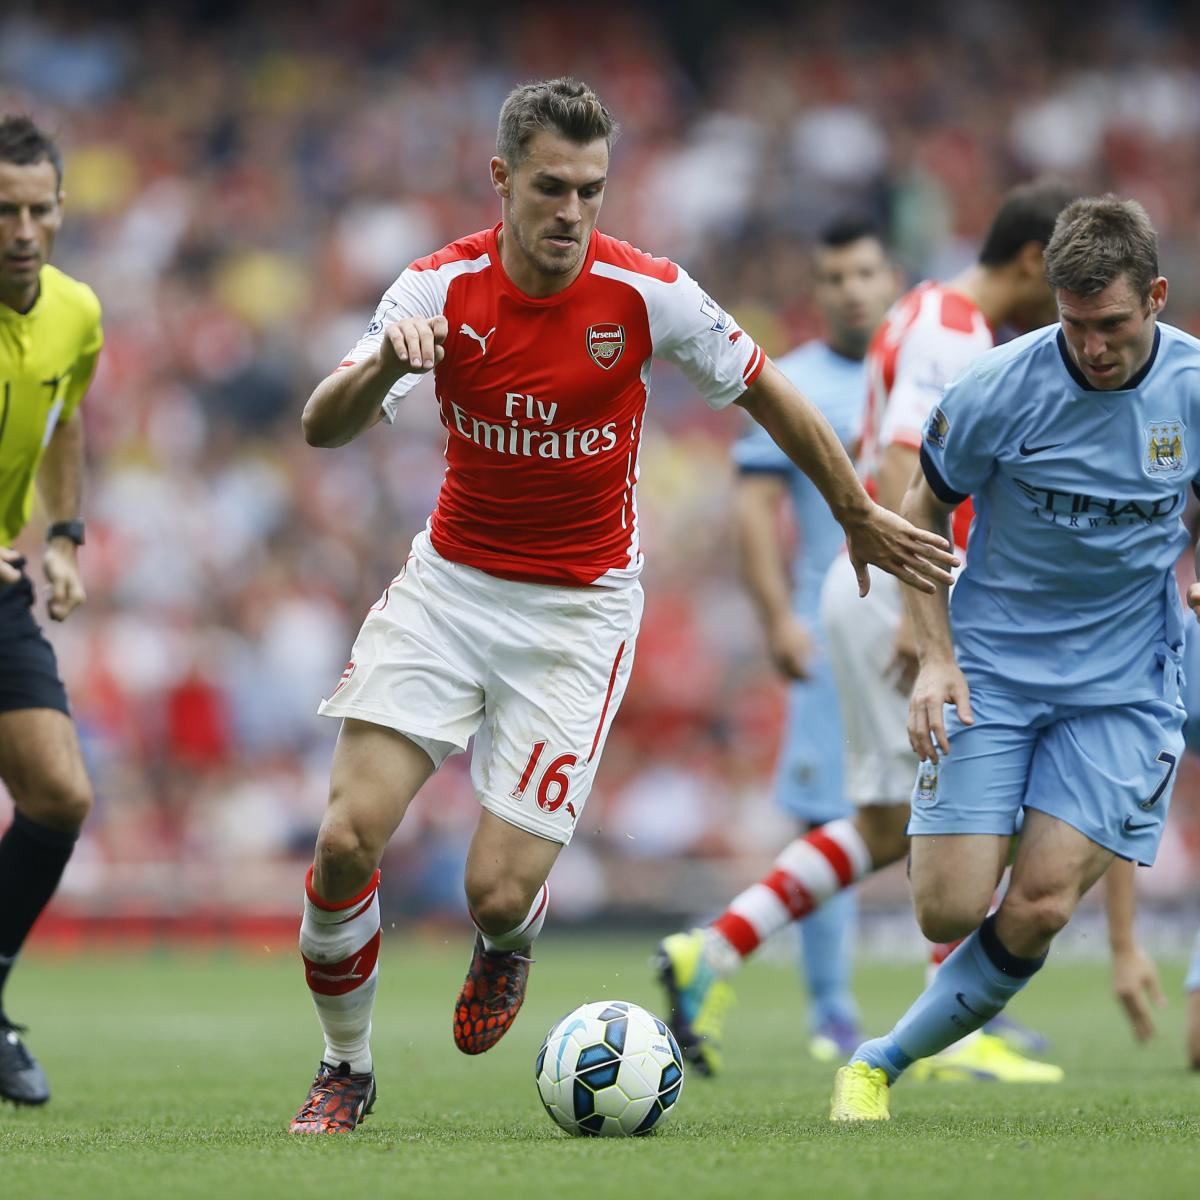 Barclays premier league table updated 2014 epl outlook - Barclays premier league ranking table ...